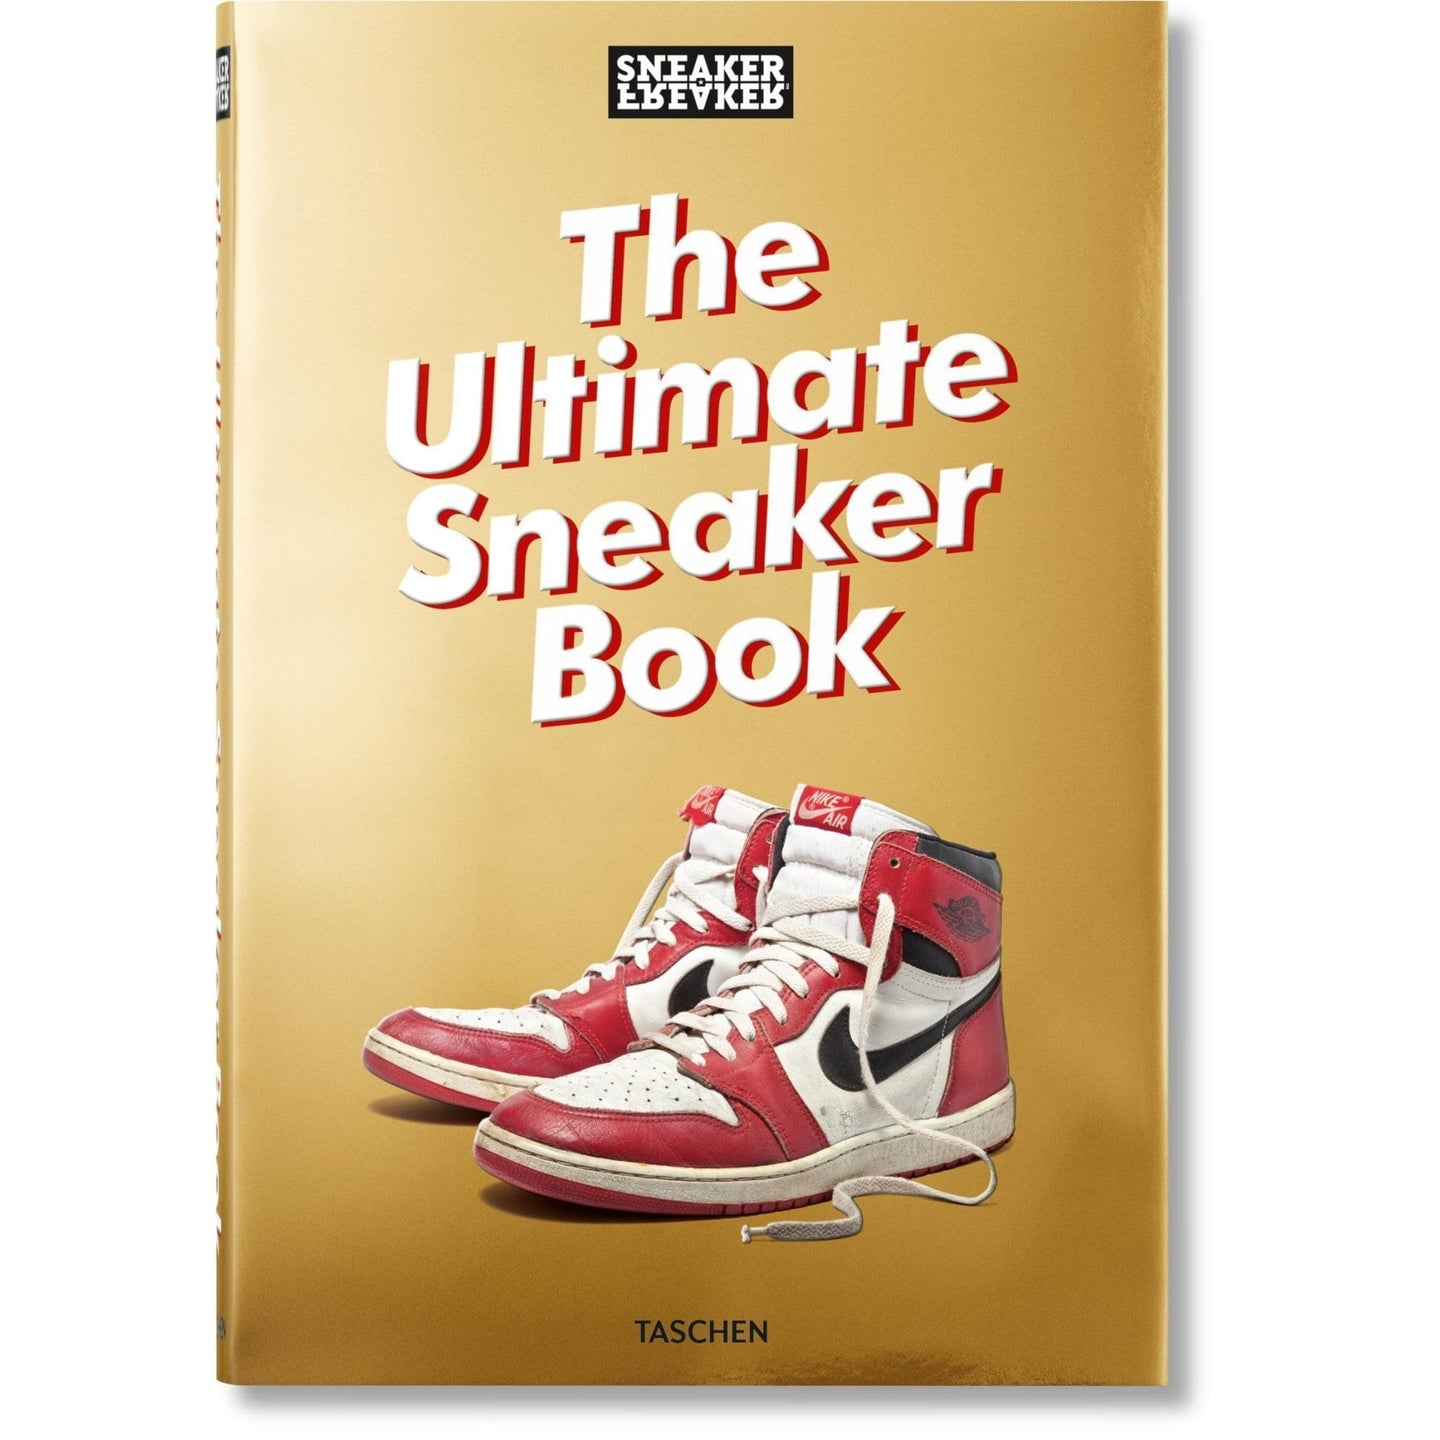 Taschen Sneaker Freaker The Ultimate Sneaker Book / Neighborhood Goods